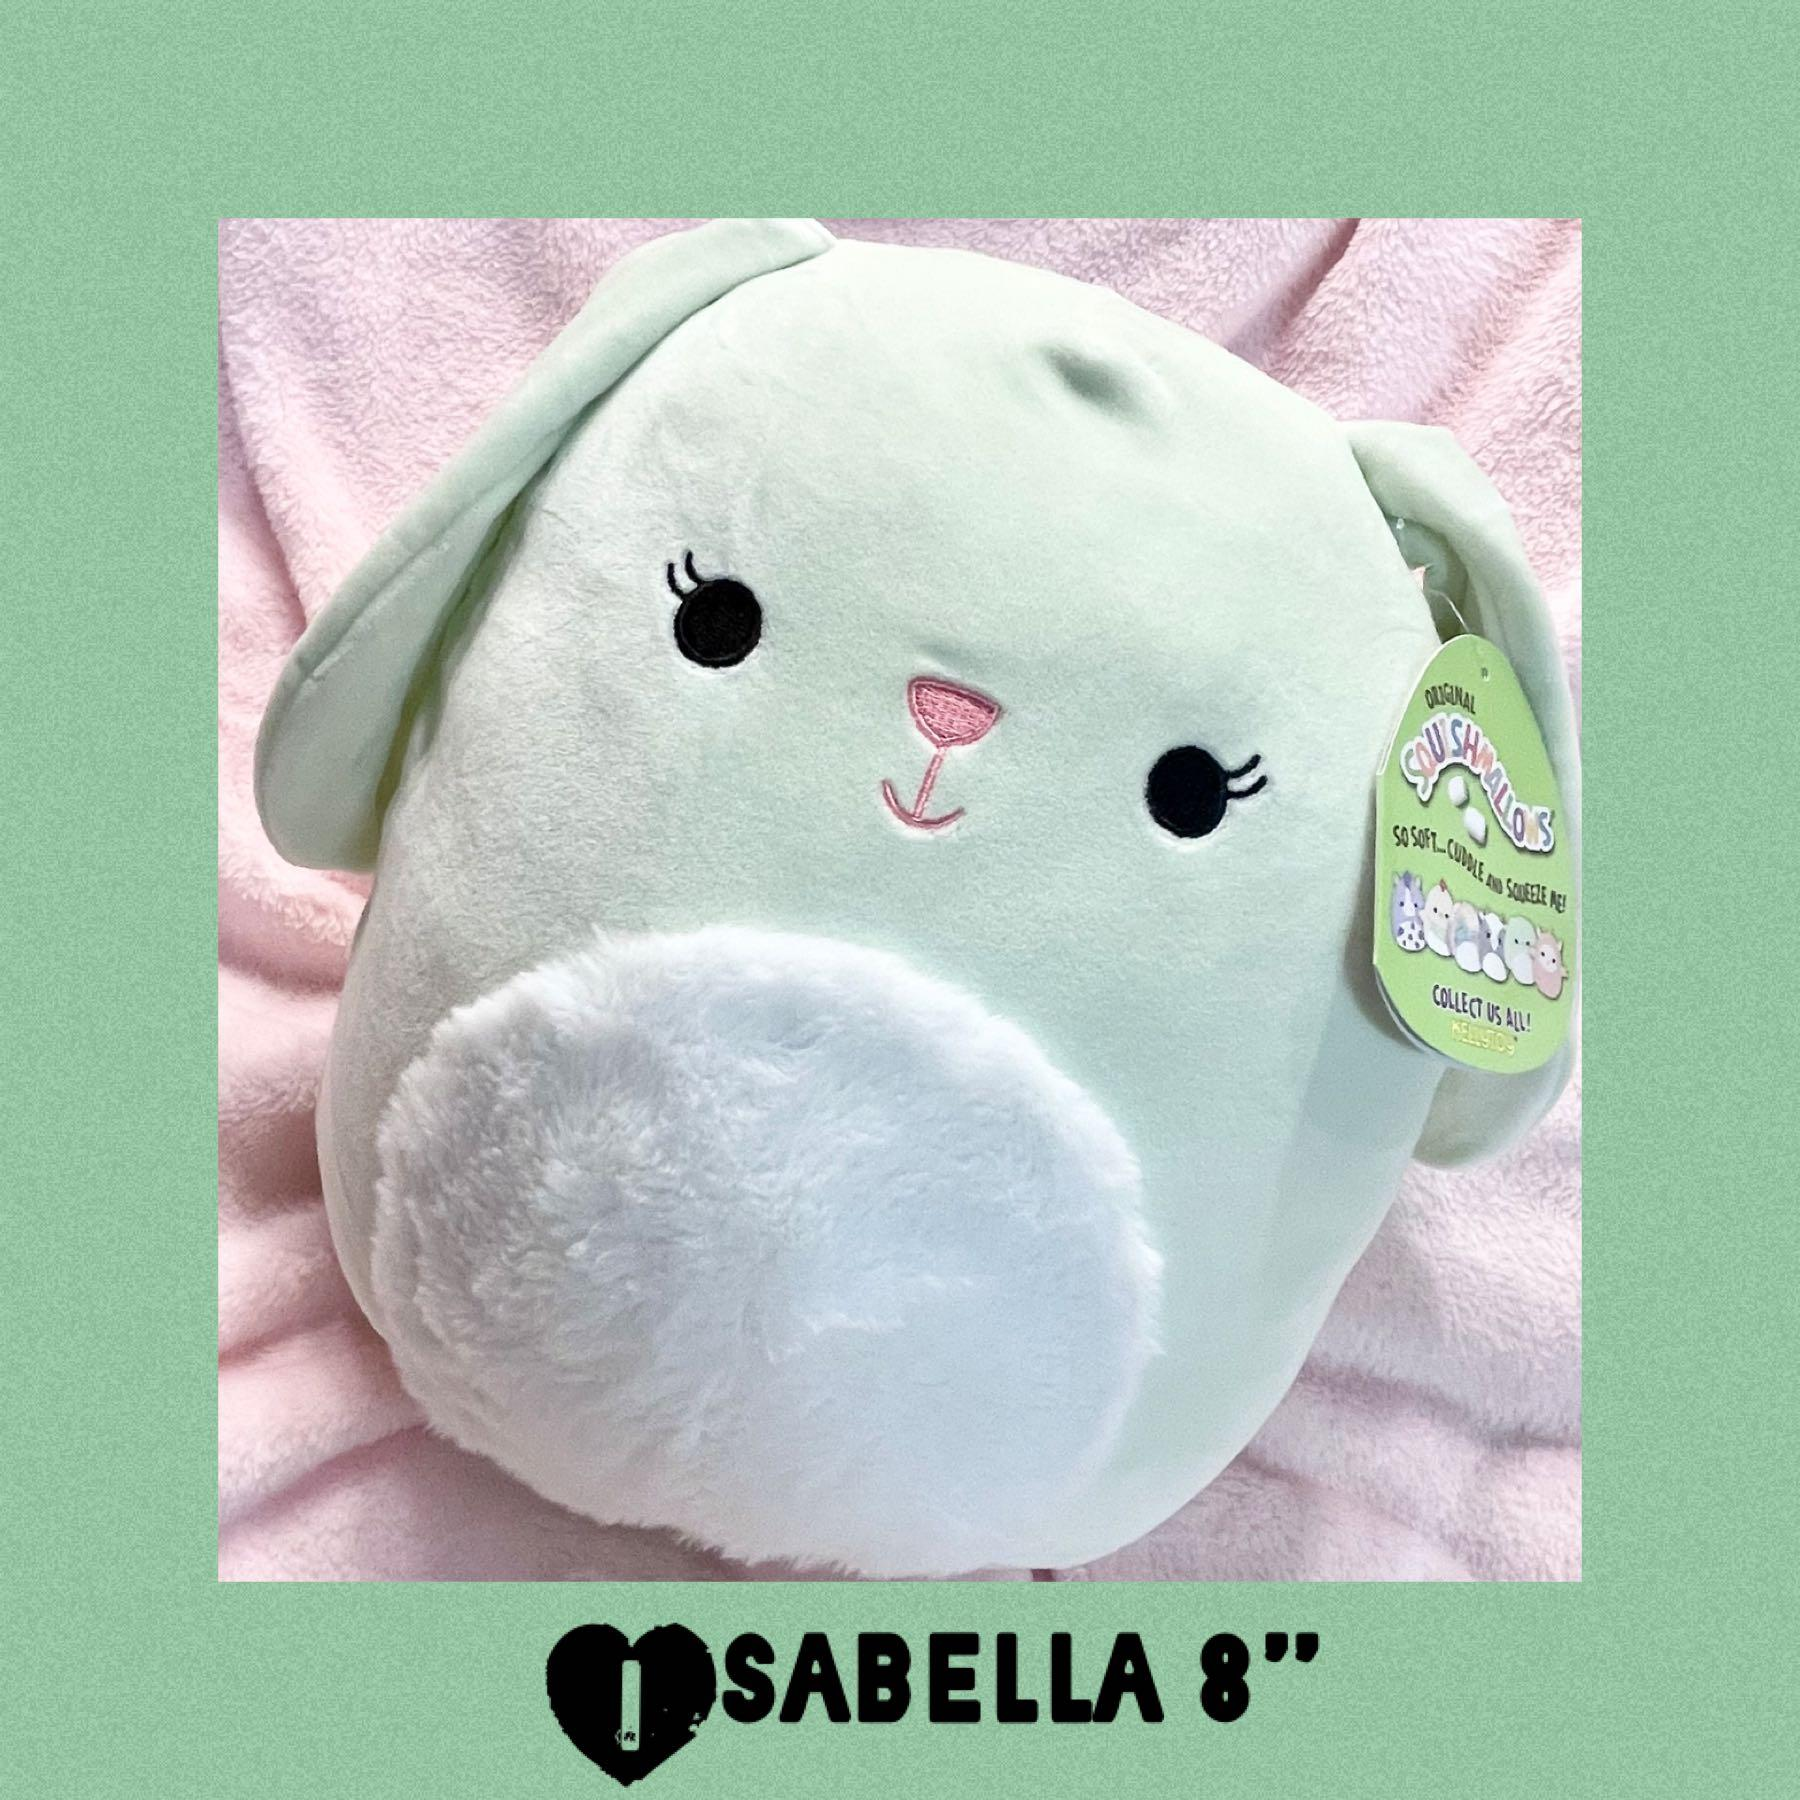 "Easter Isabella Squishmallows Bunny 8"" Plush"